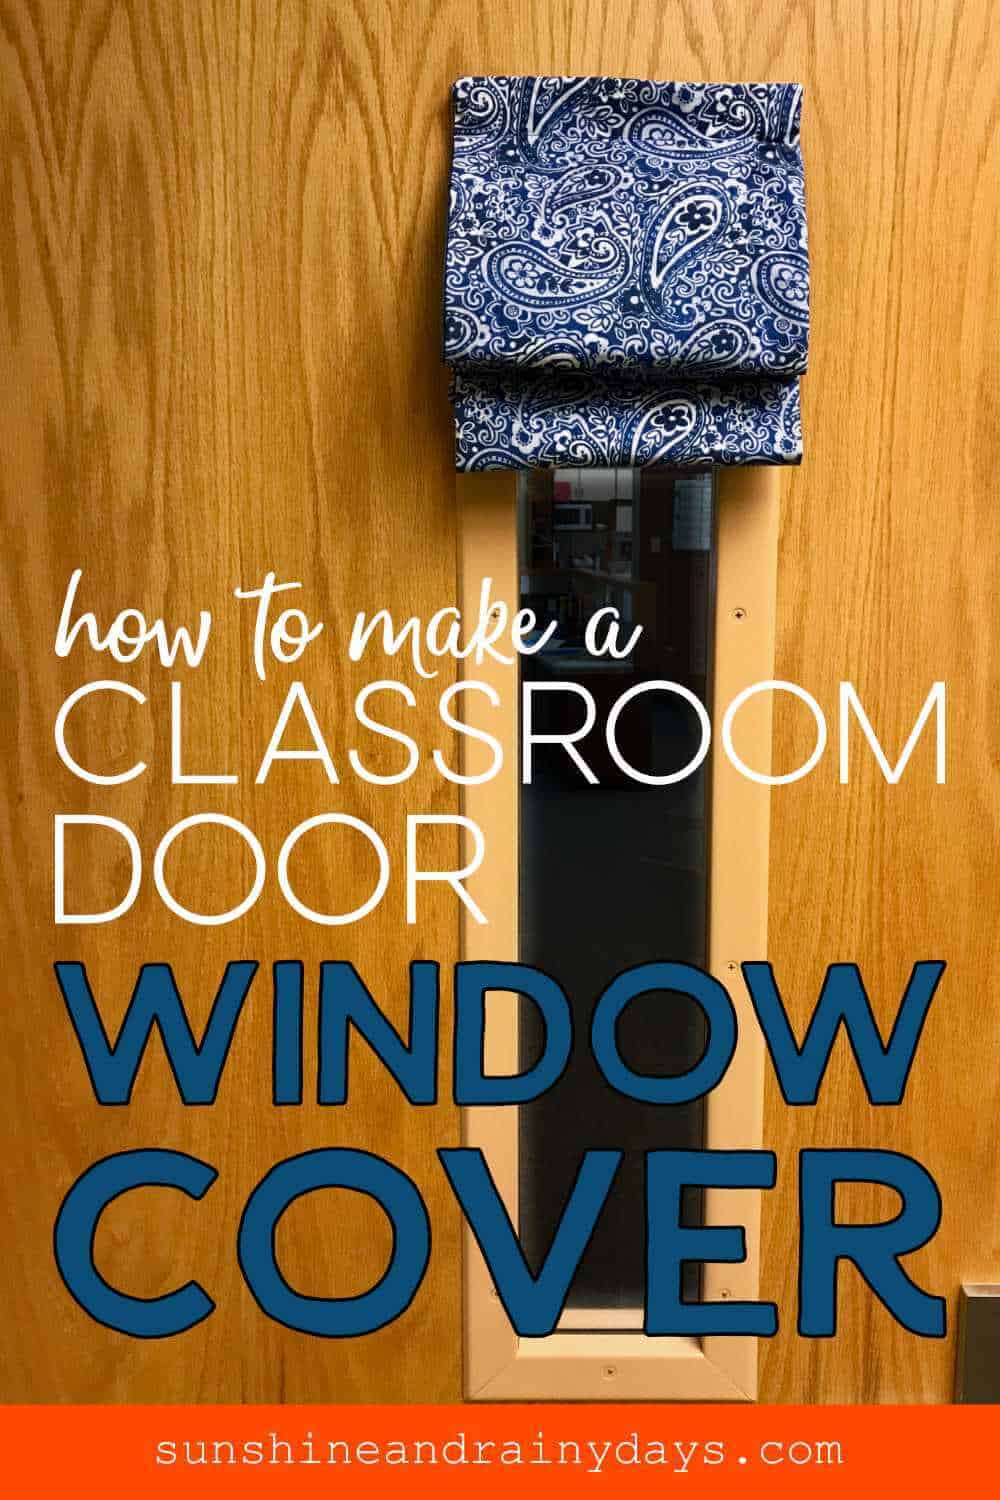 Window Covering on a Classroom Door, pushed up with the words: How To Make A Classroom Door Window Cover